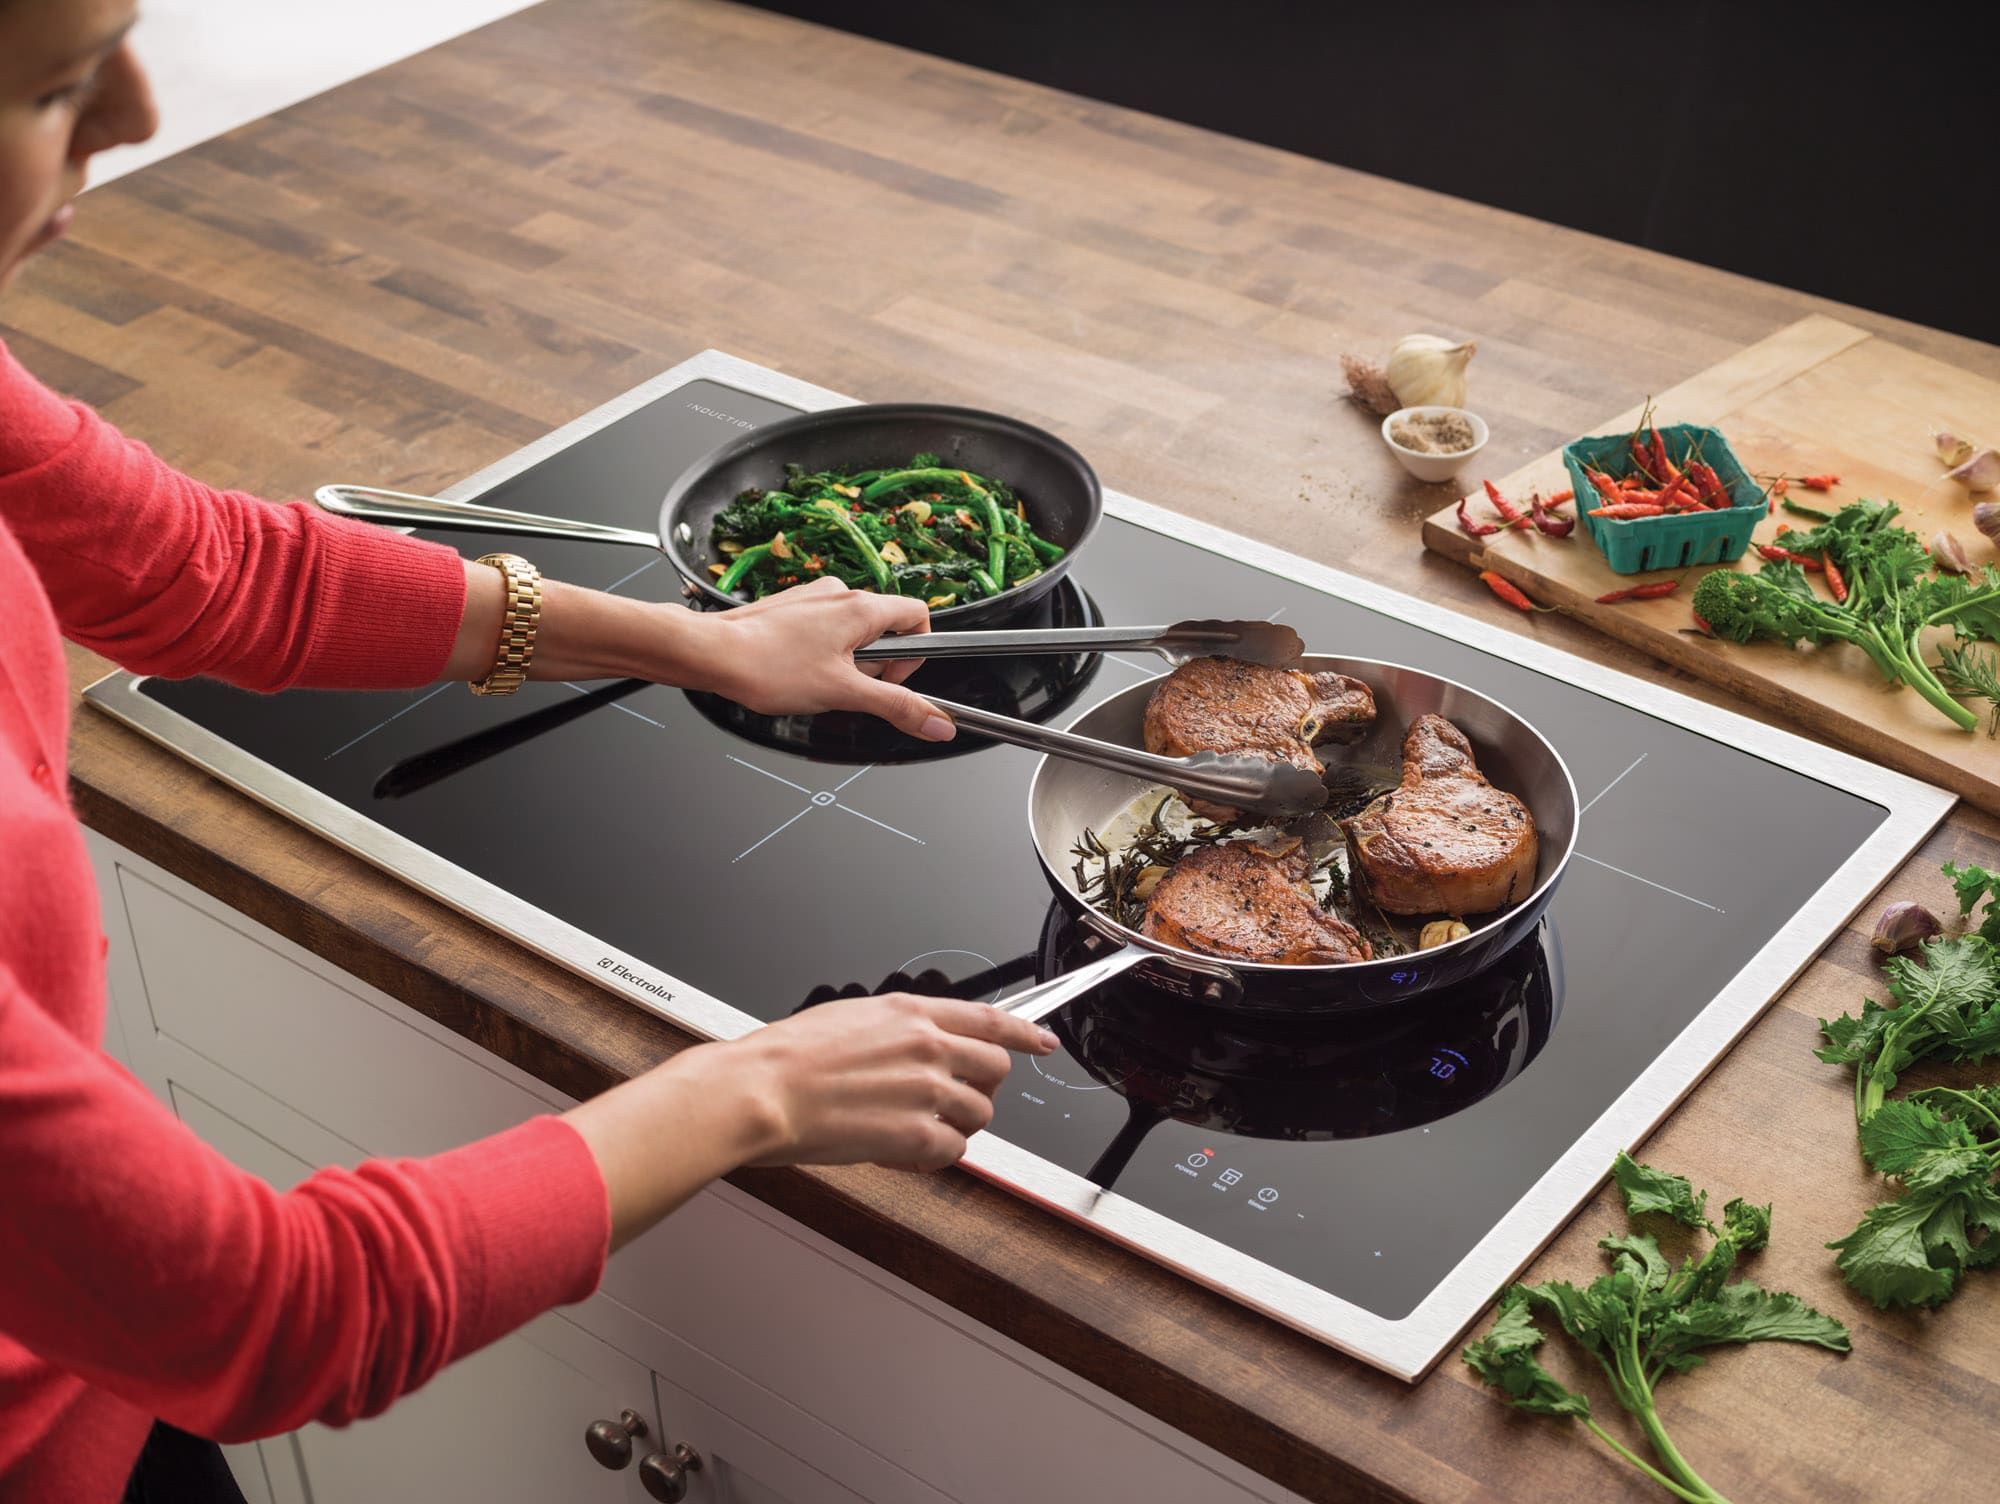 advantages of special cooktop